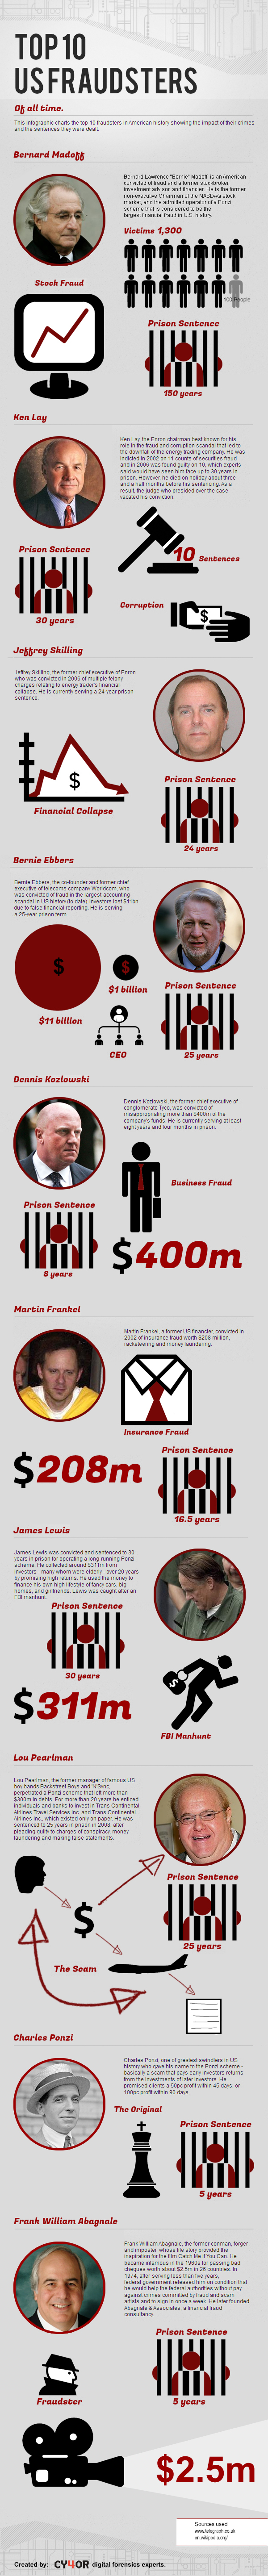 Top 10 US Fraudsters of All Time